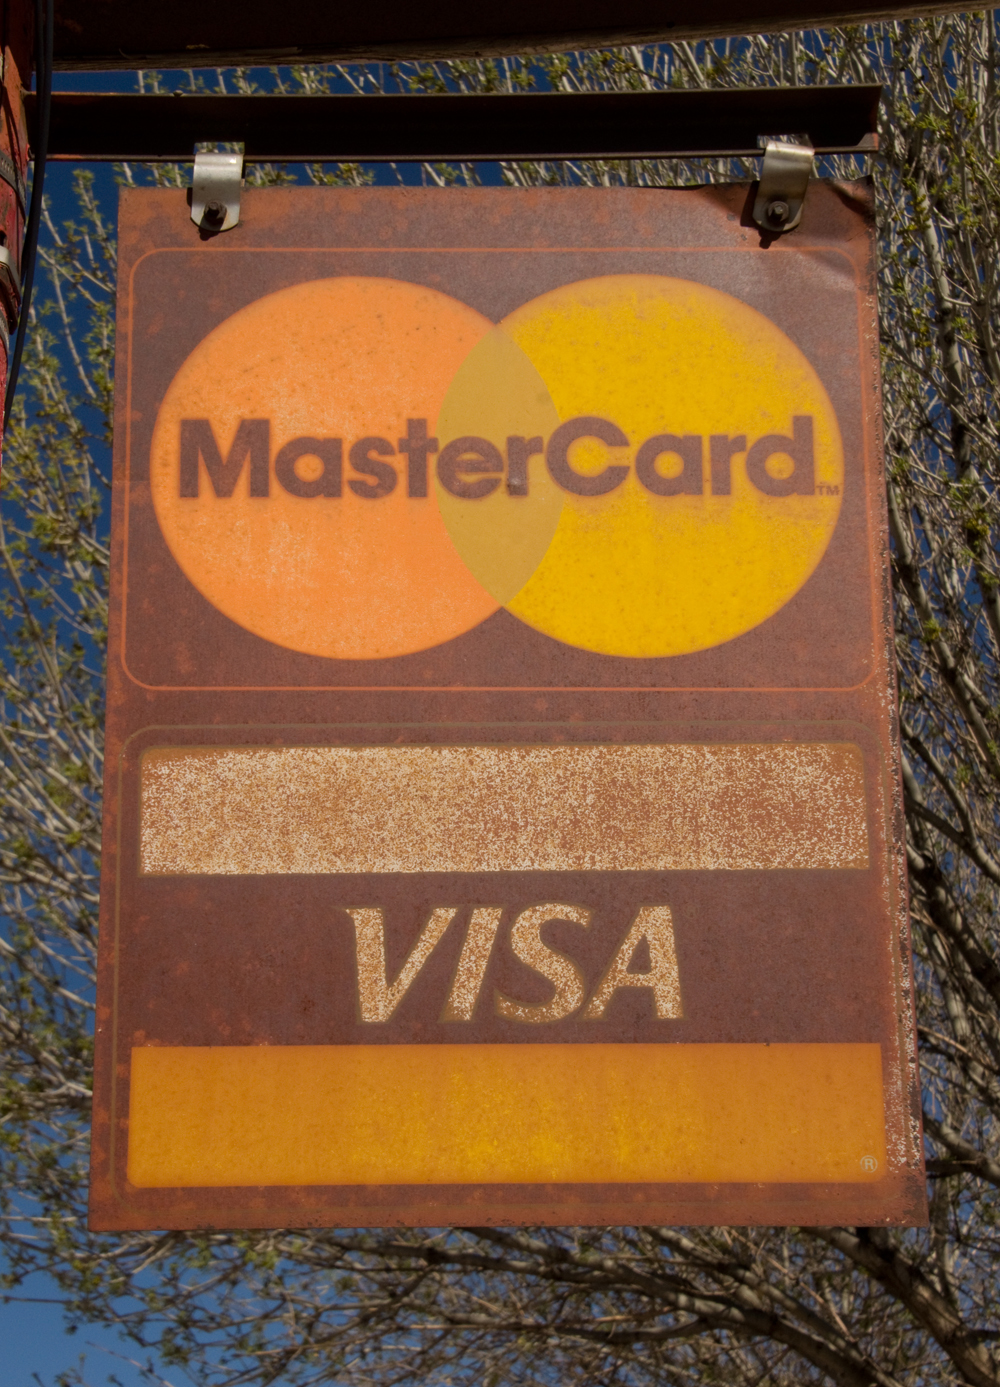 Master Card Visa sign.jpg